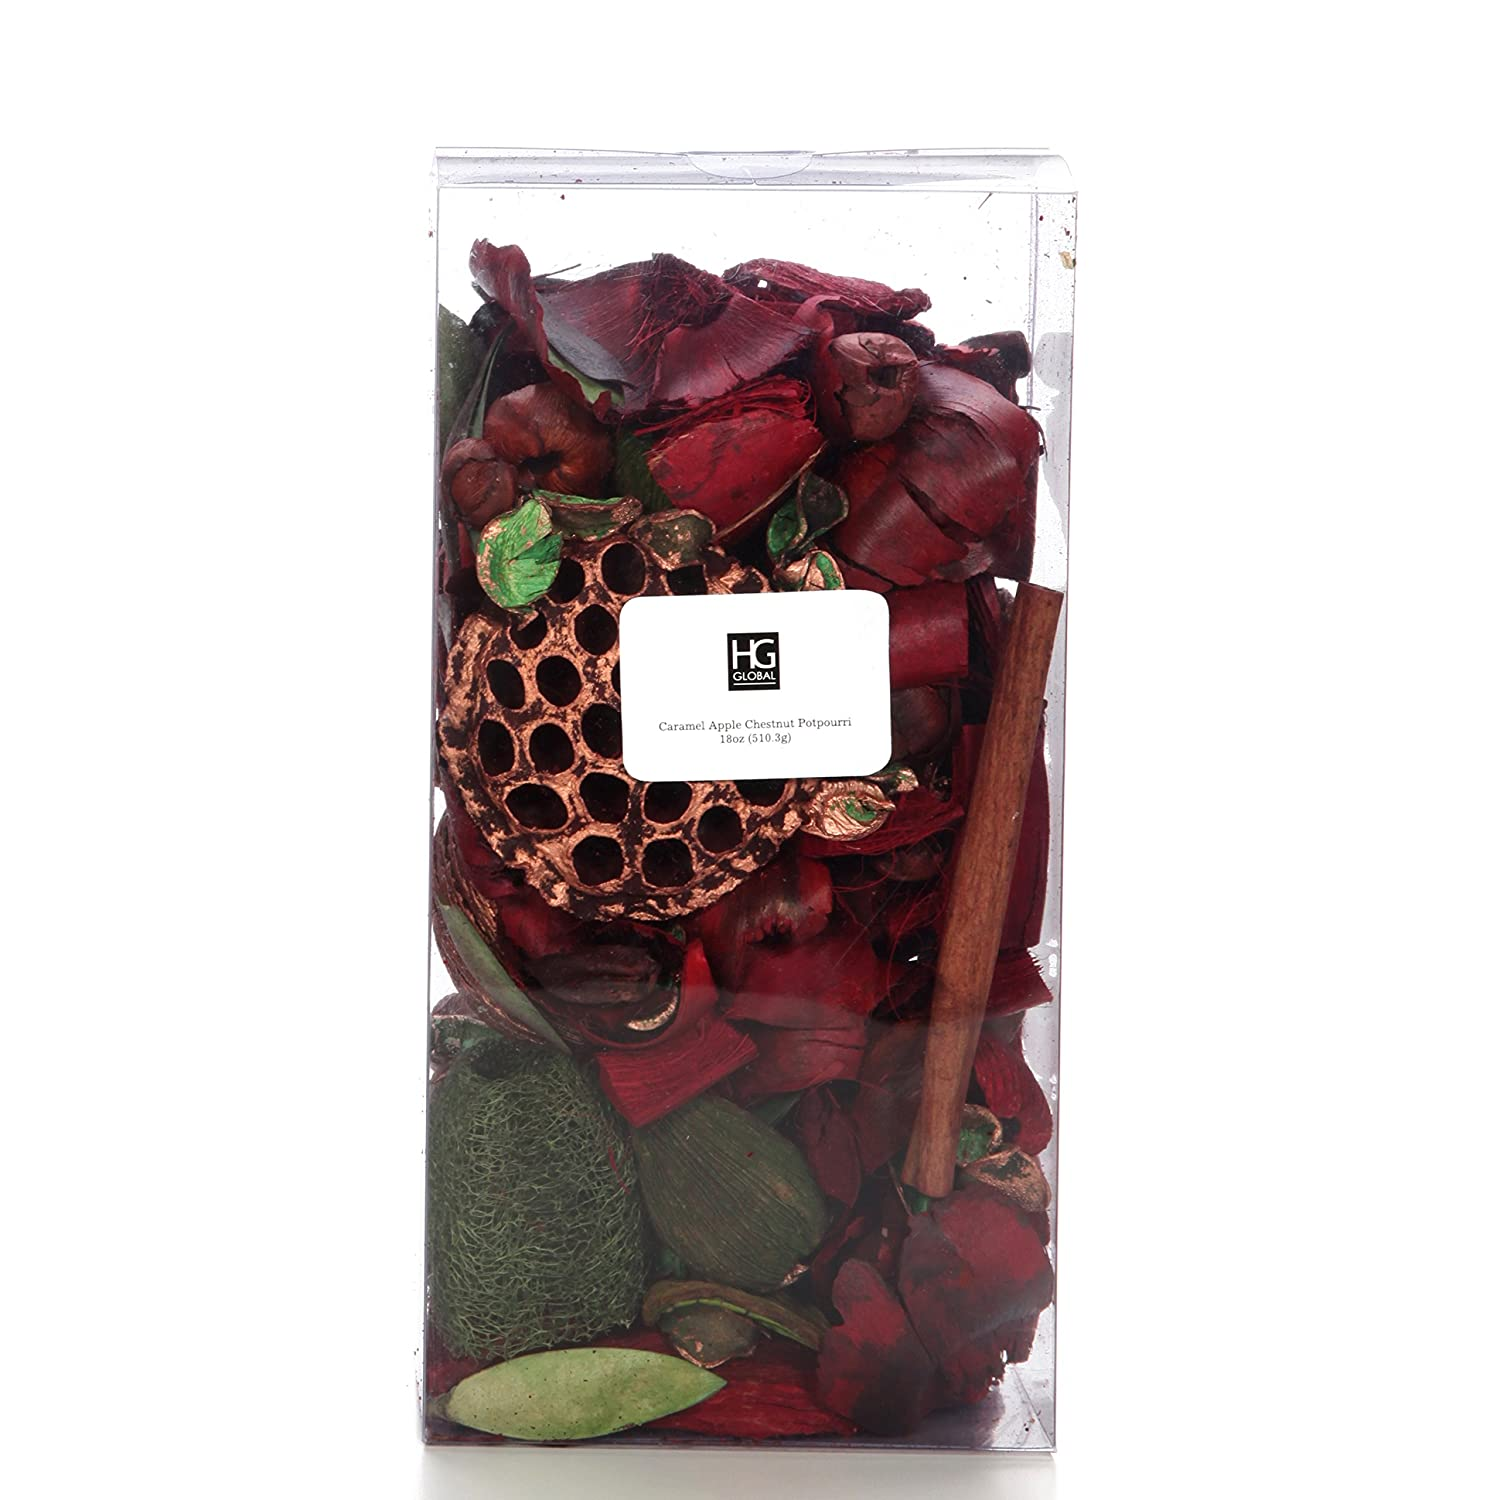 Hosley's Premium Caramel Apple Chestnut Potpourri- 18oz. Perfect for Wedding or Special Occasion; for Everyday use, Wedding, Events, Aromatherapy, Spa, Meditation P2 HG Global